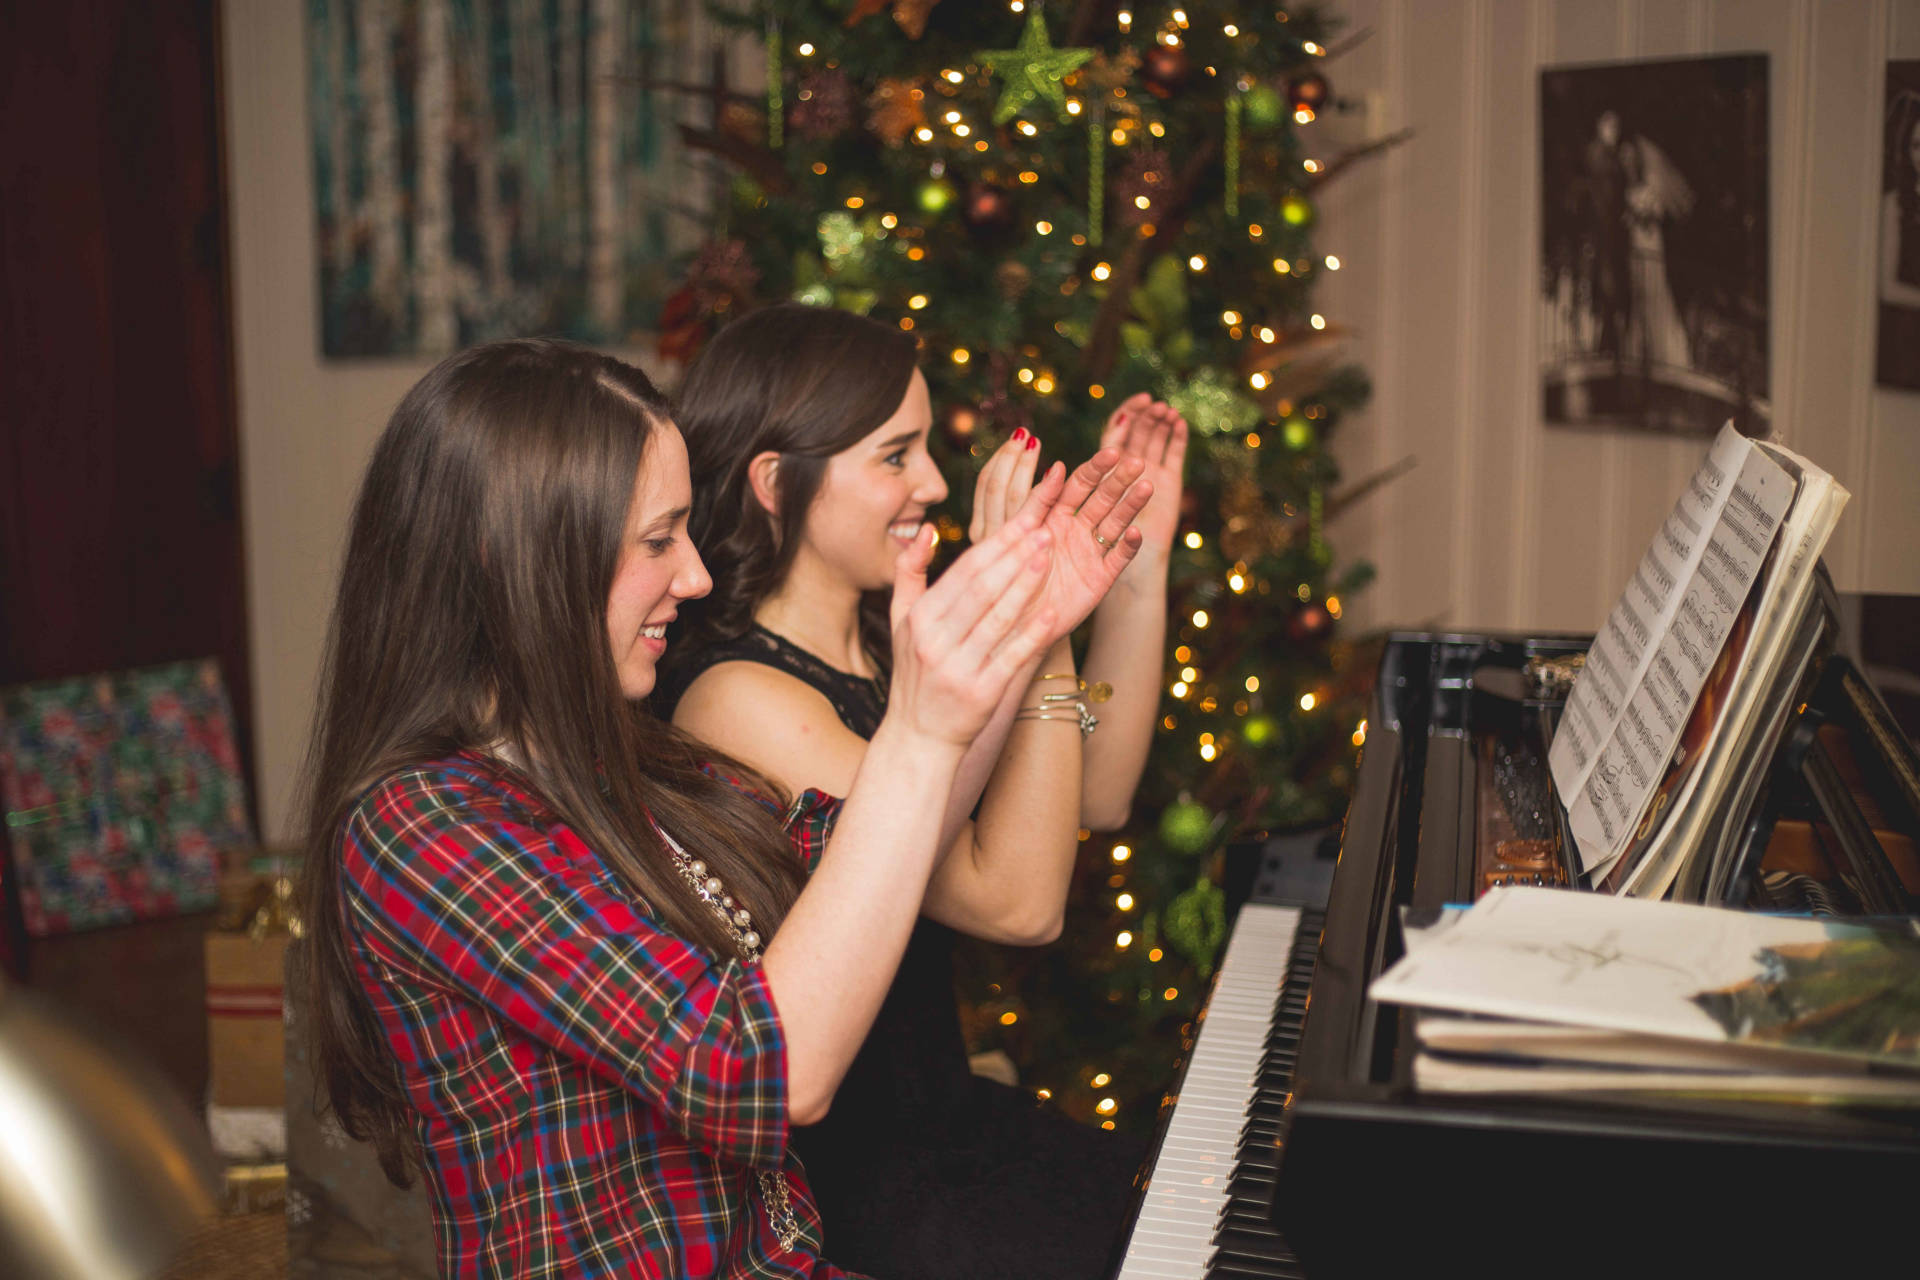 The Laurel Dress in Plaid - playing piano with my sister during Christmas Eve 2015